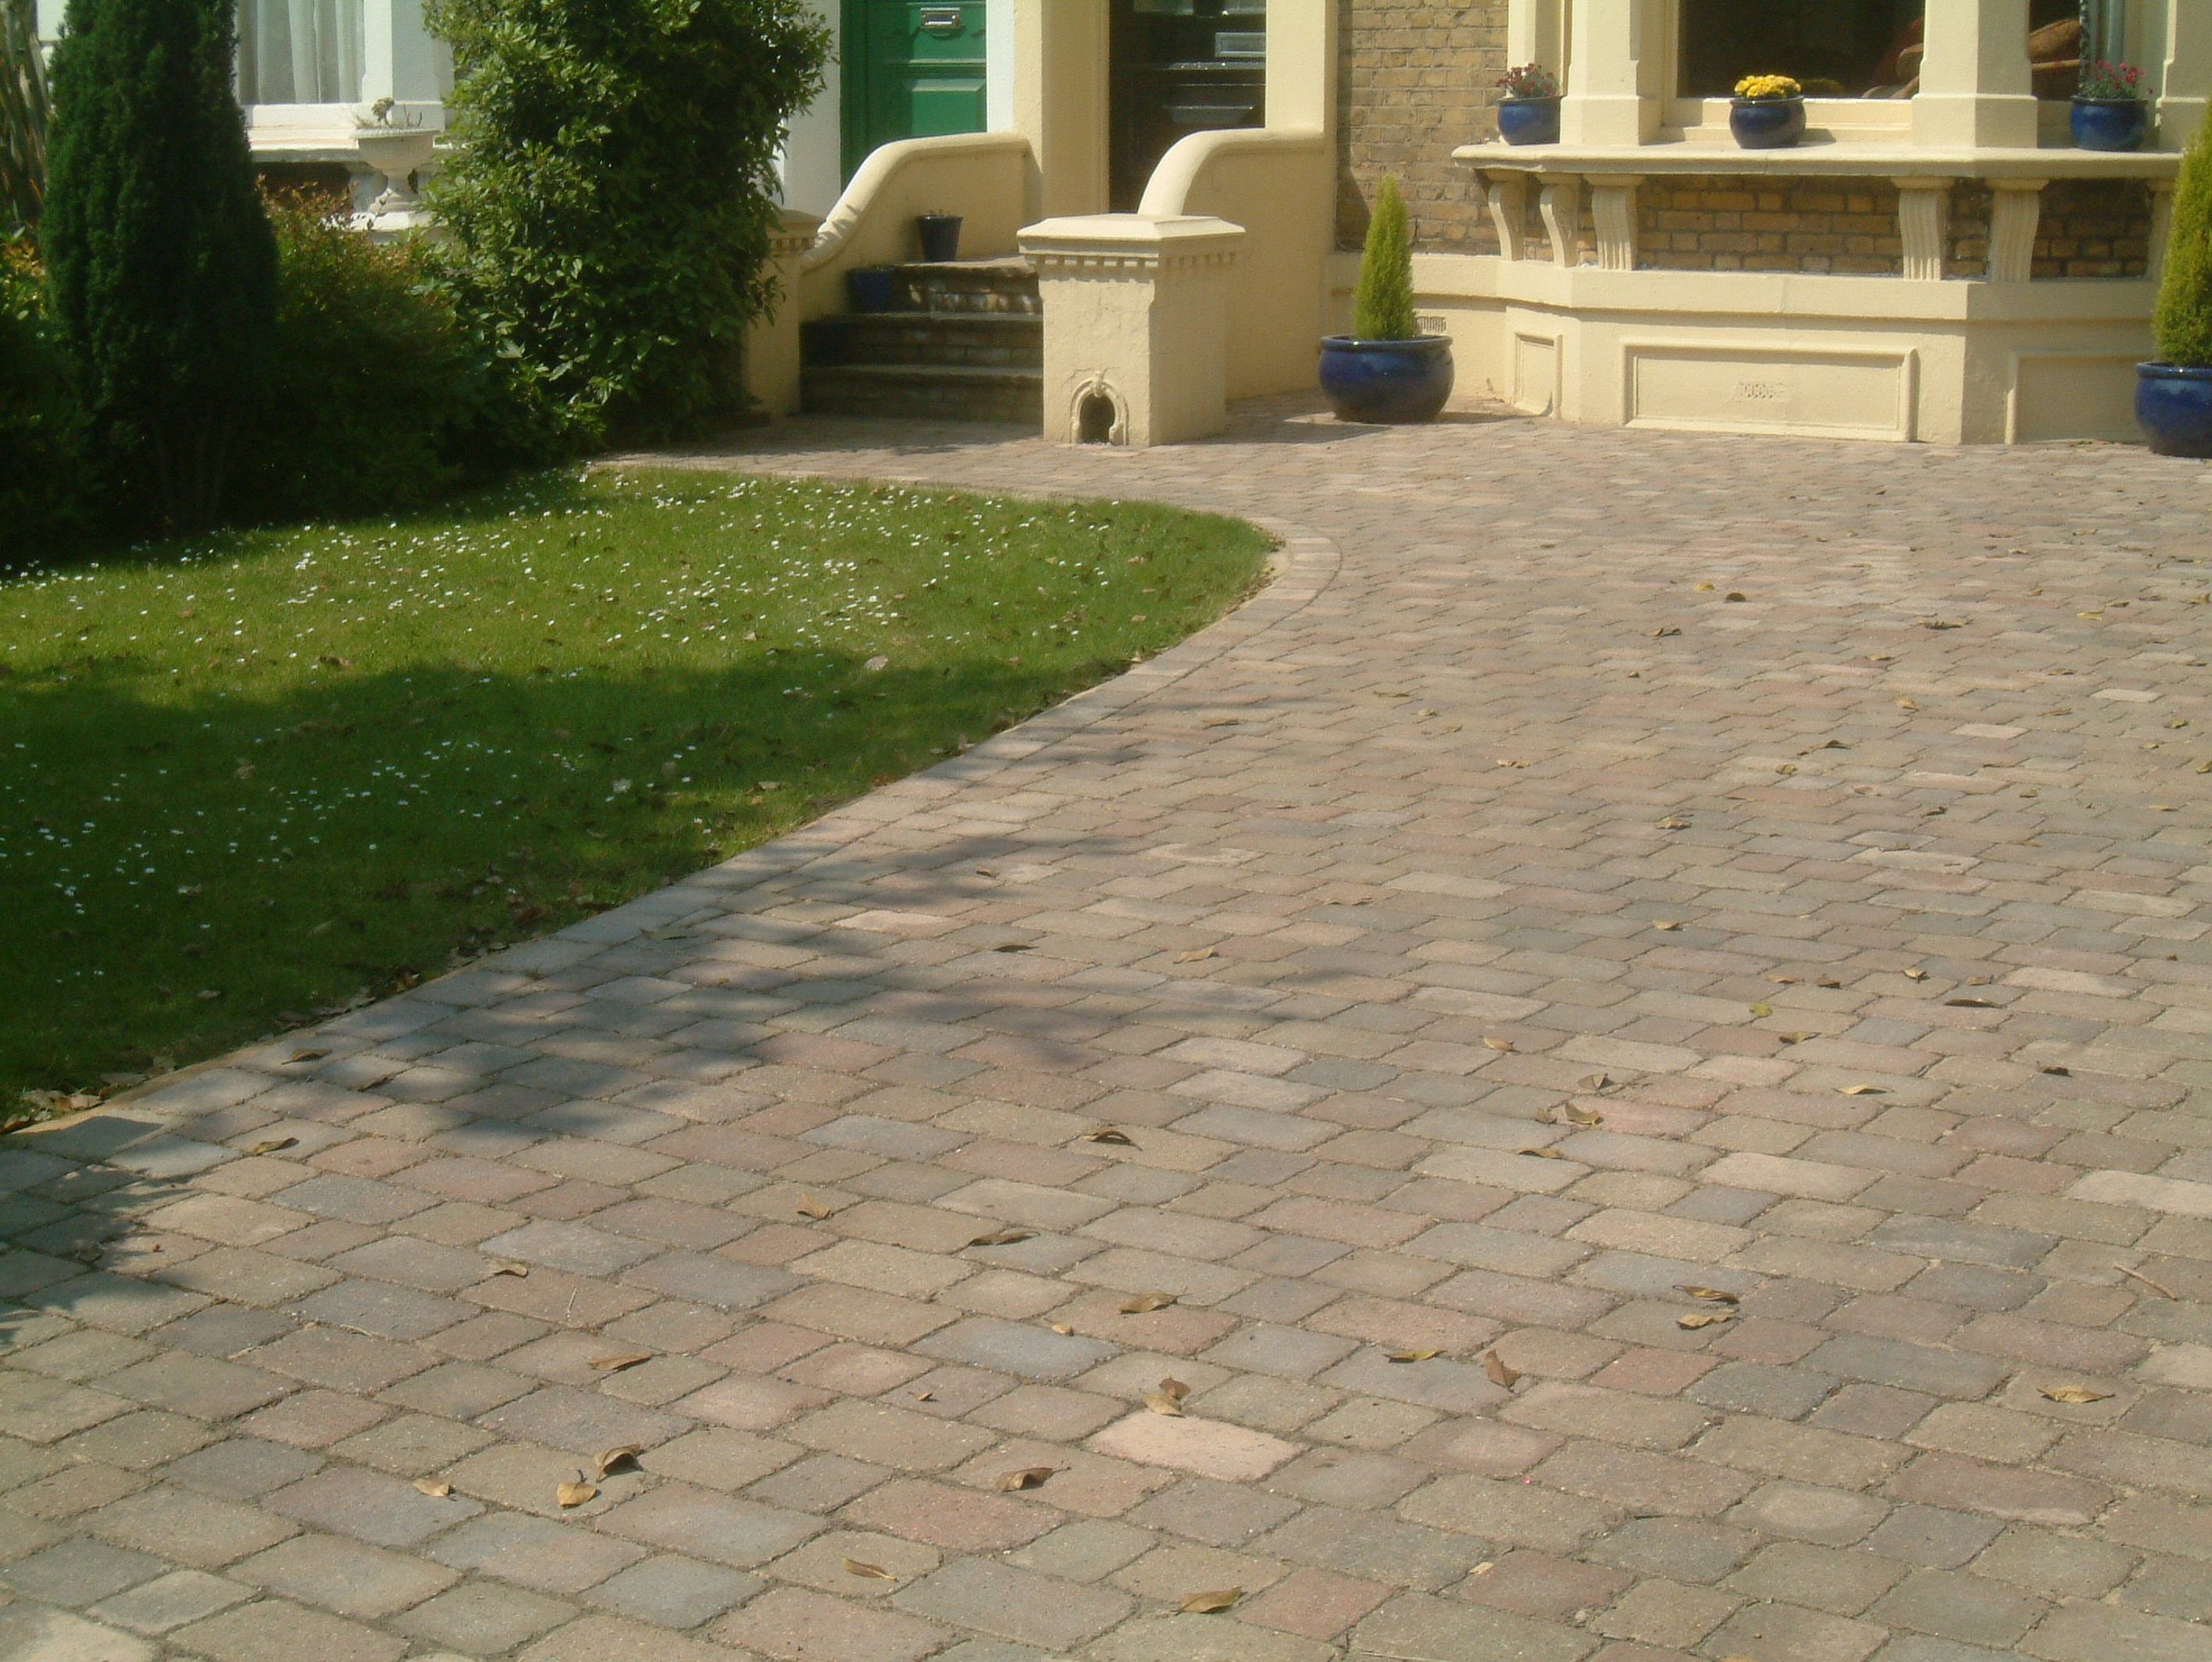 Driveway Designs Best 10 Tarmac Driveways Ideas On Pinterest Ways To Upgrade Your Home Driveway